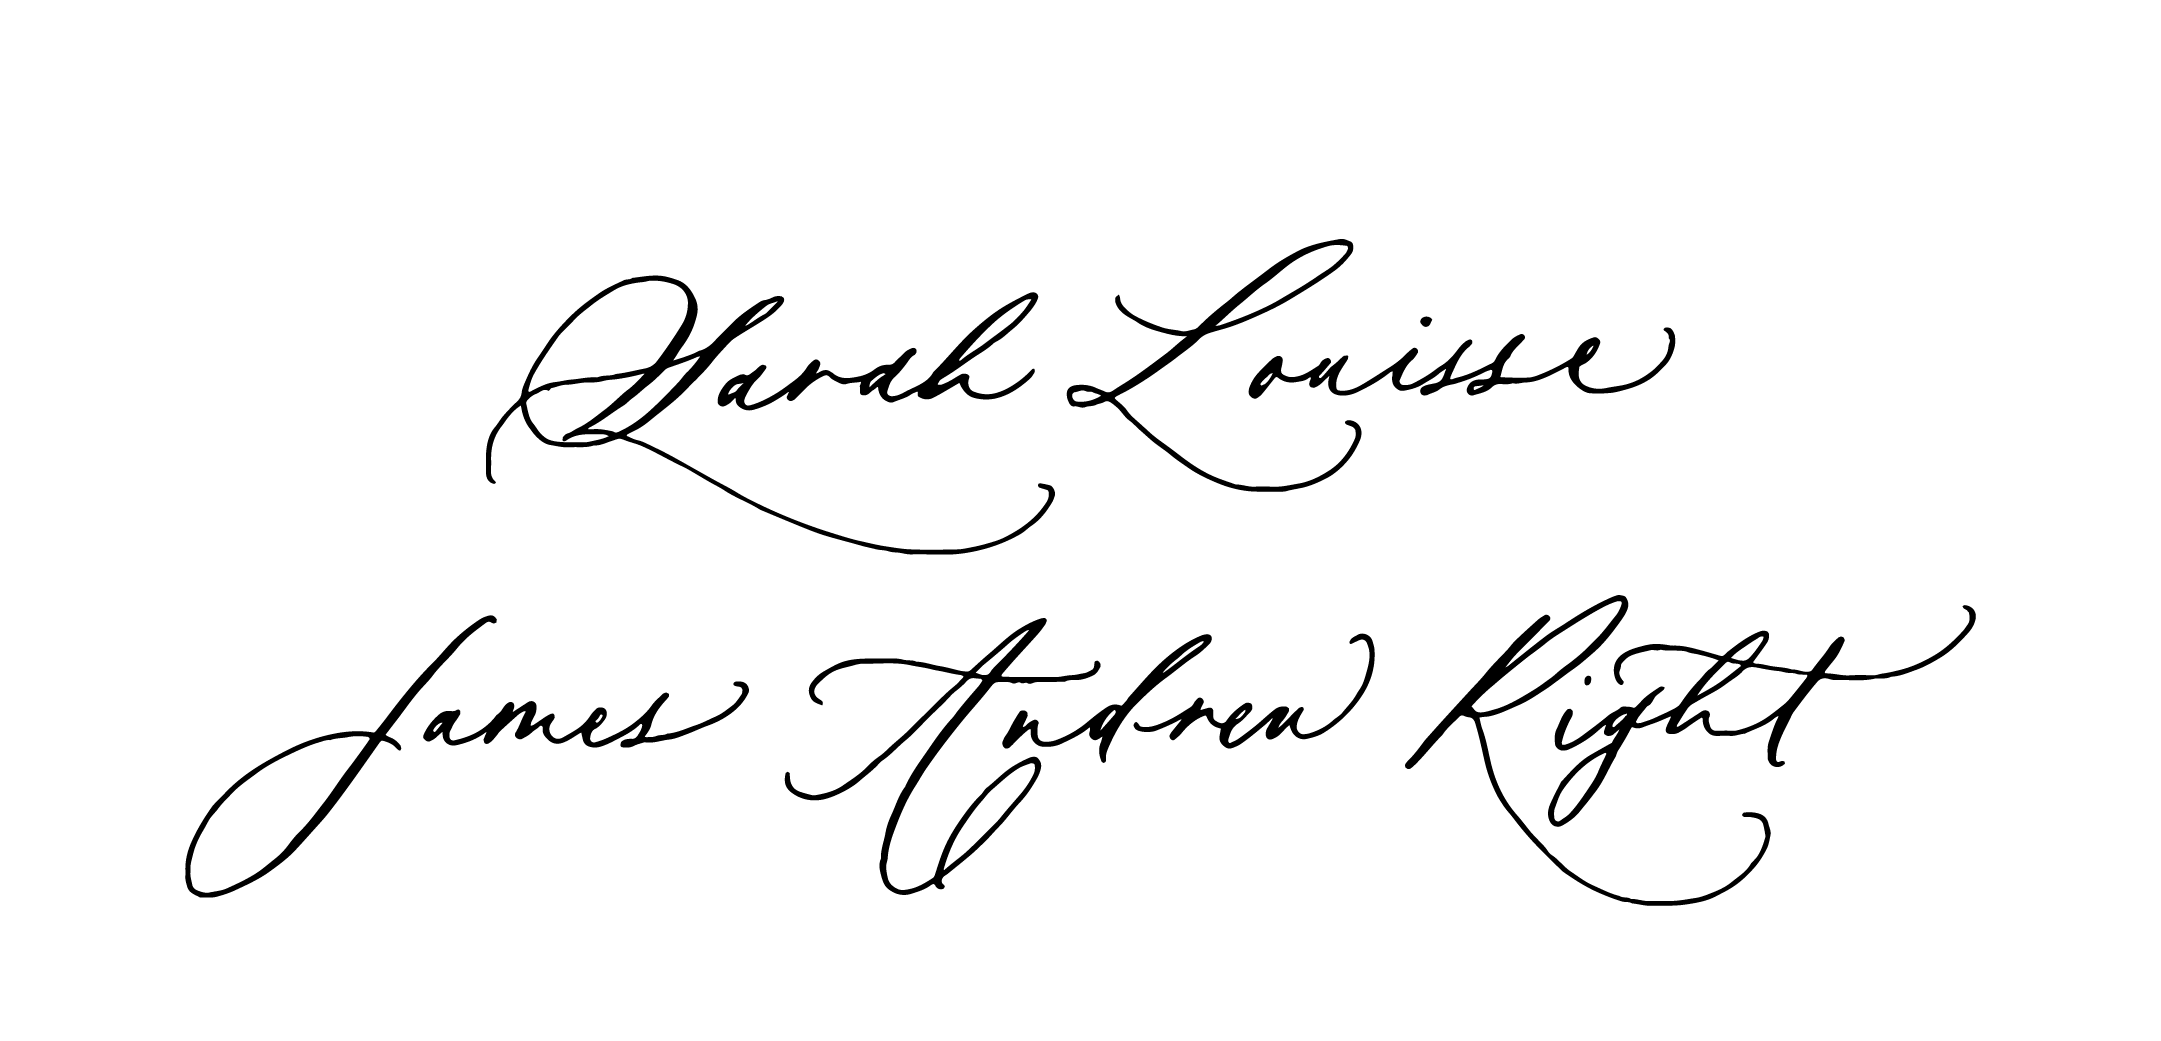 Timeless calligraphy style for Ciarra Claire Fine Art.